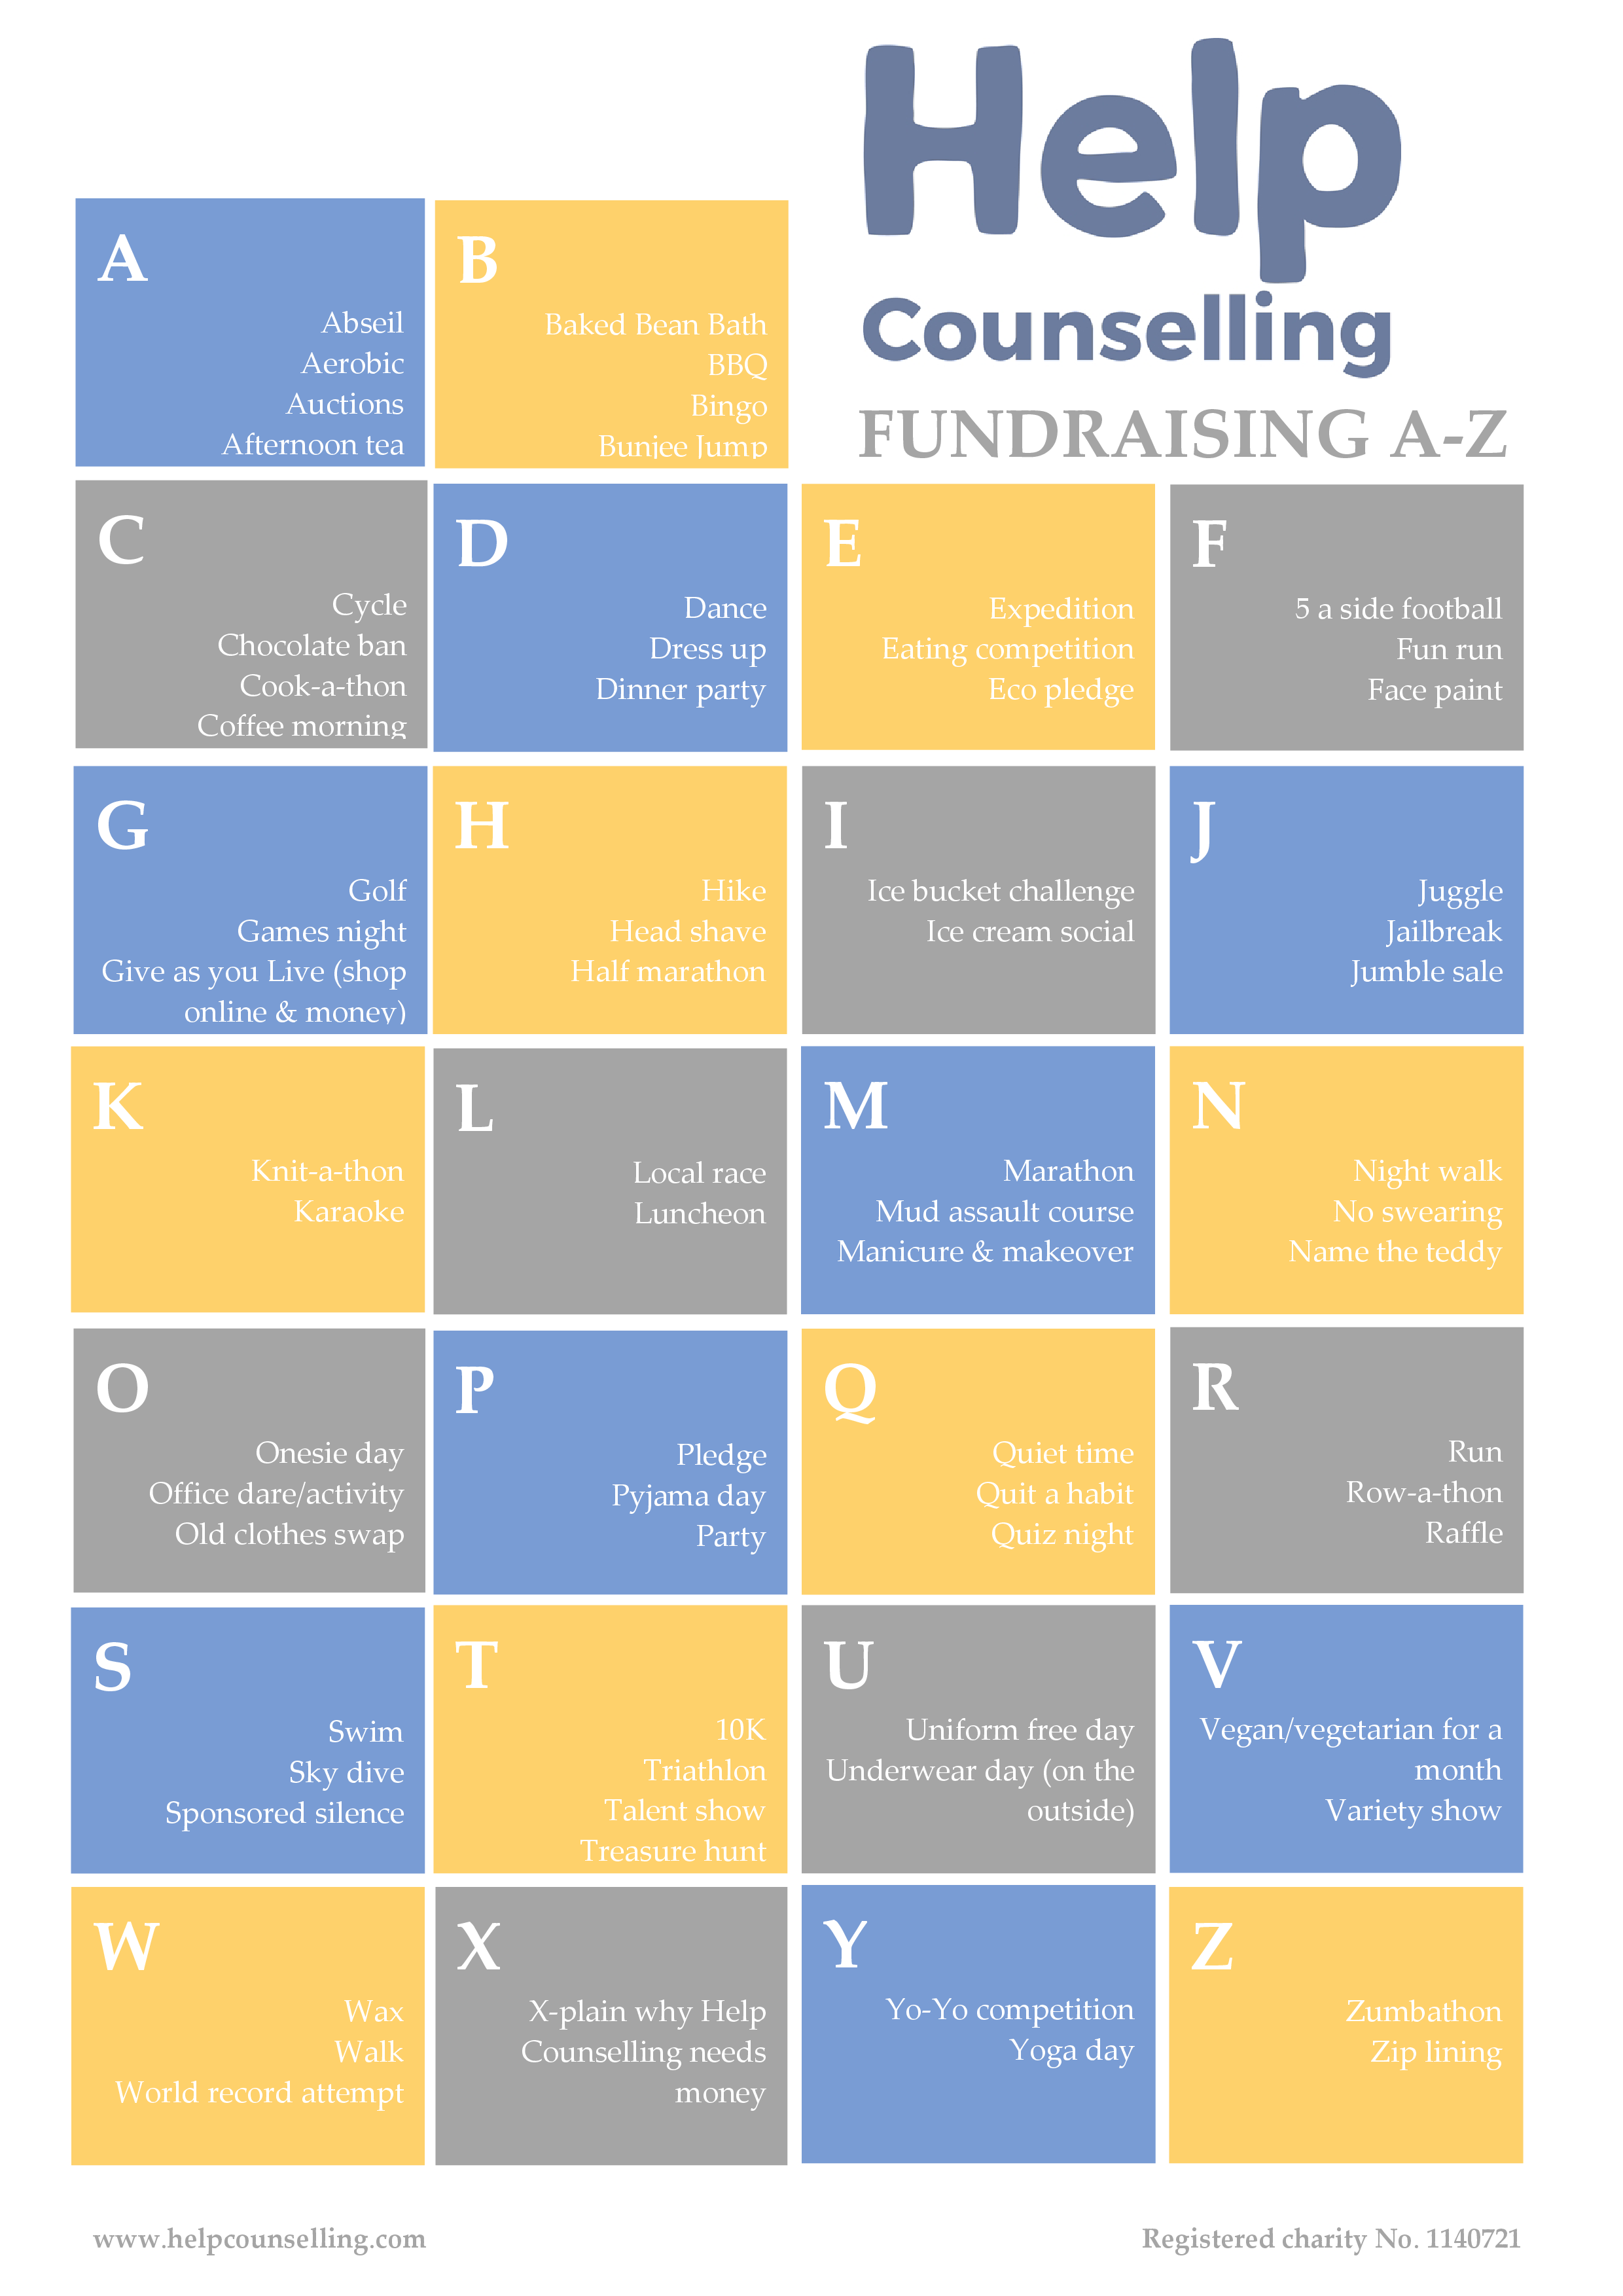 a-z fundraising guide - help counselling